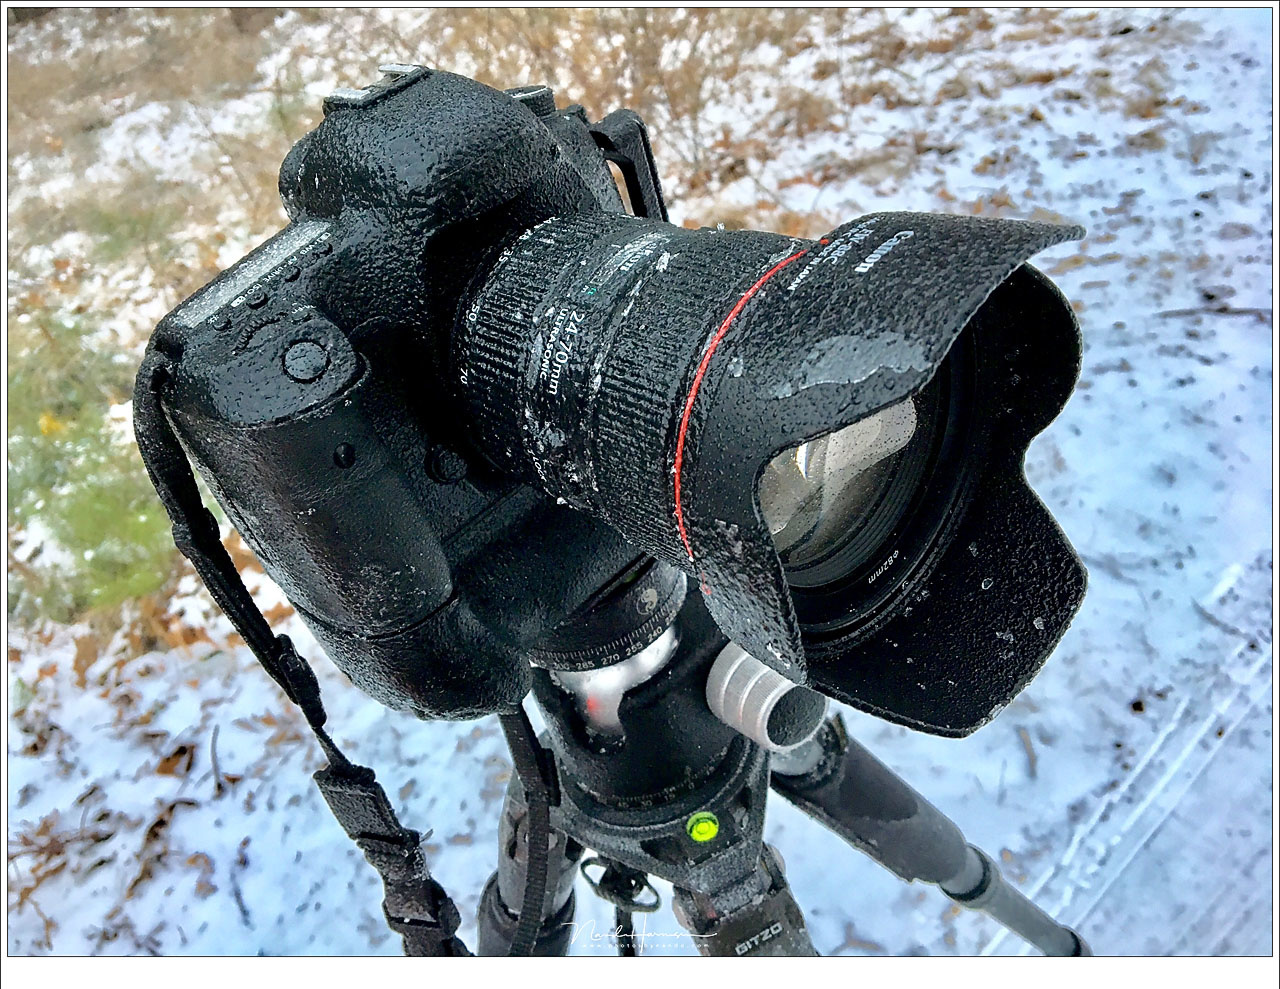 My camera covered with sleet. I never had my camera covered in ice like this, but it kept on working without problem. The only concern is to keep the lens free from condense, ice and water drops.